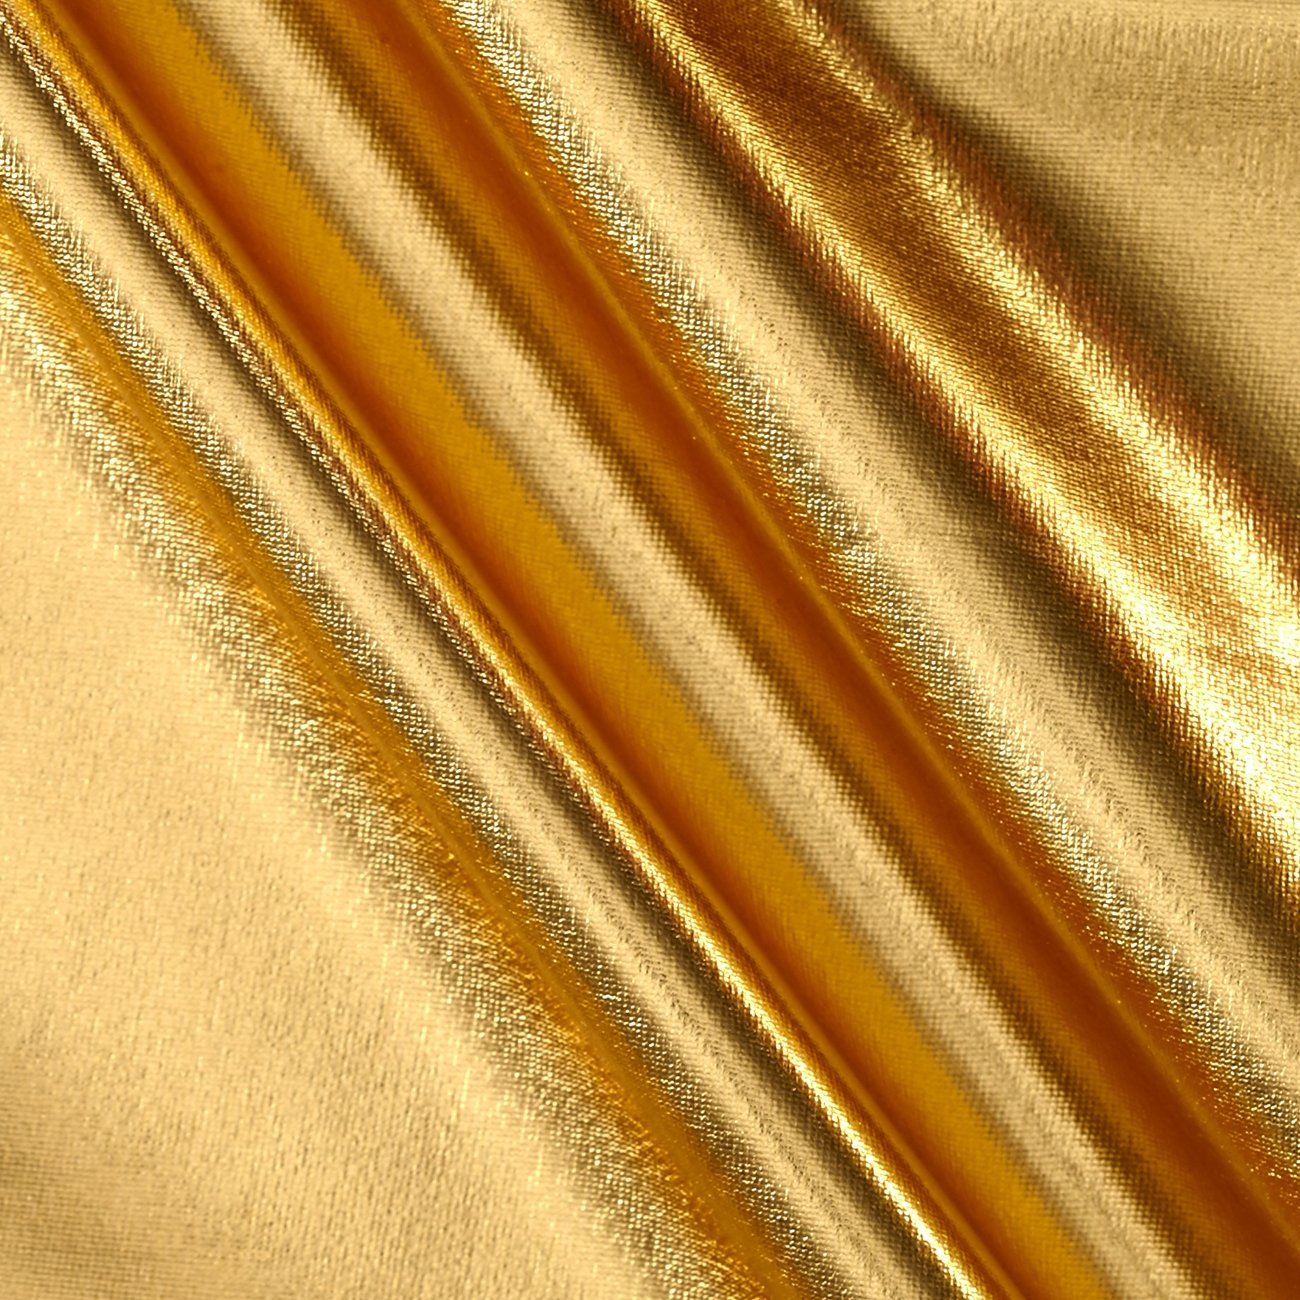 Ben Textiles Foil Lame Knit Spandex Fabric by The Yard, Gold Ben Textiles Inc. 0450606